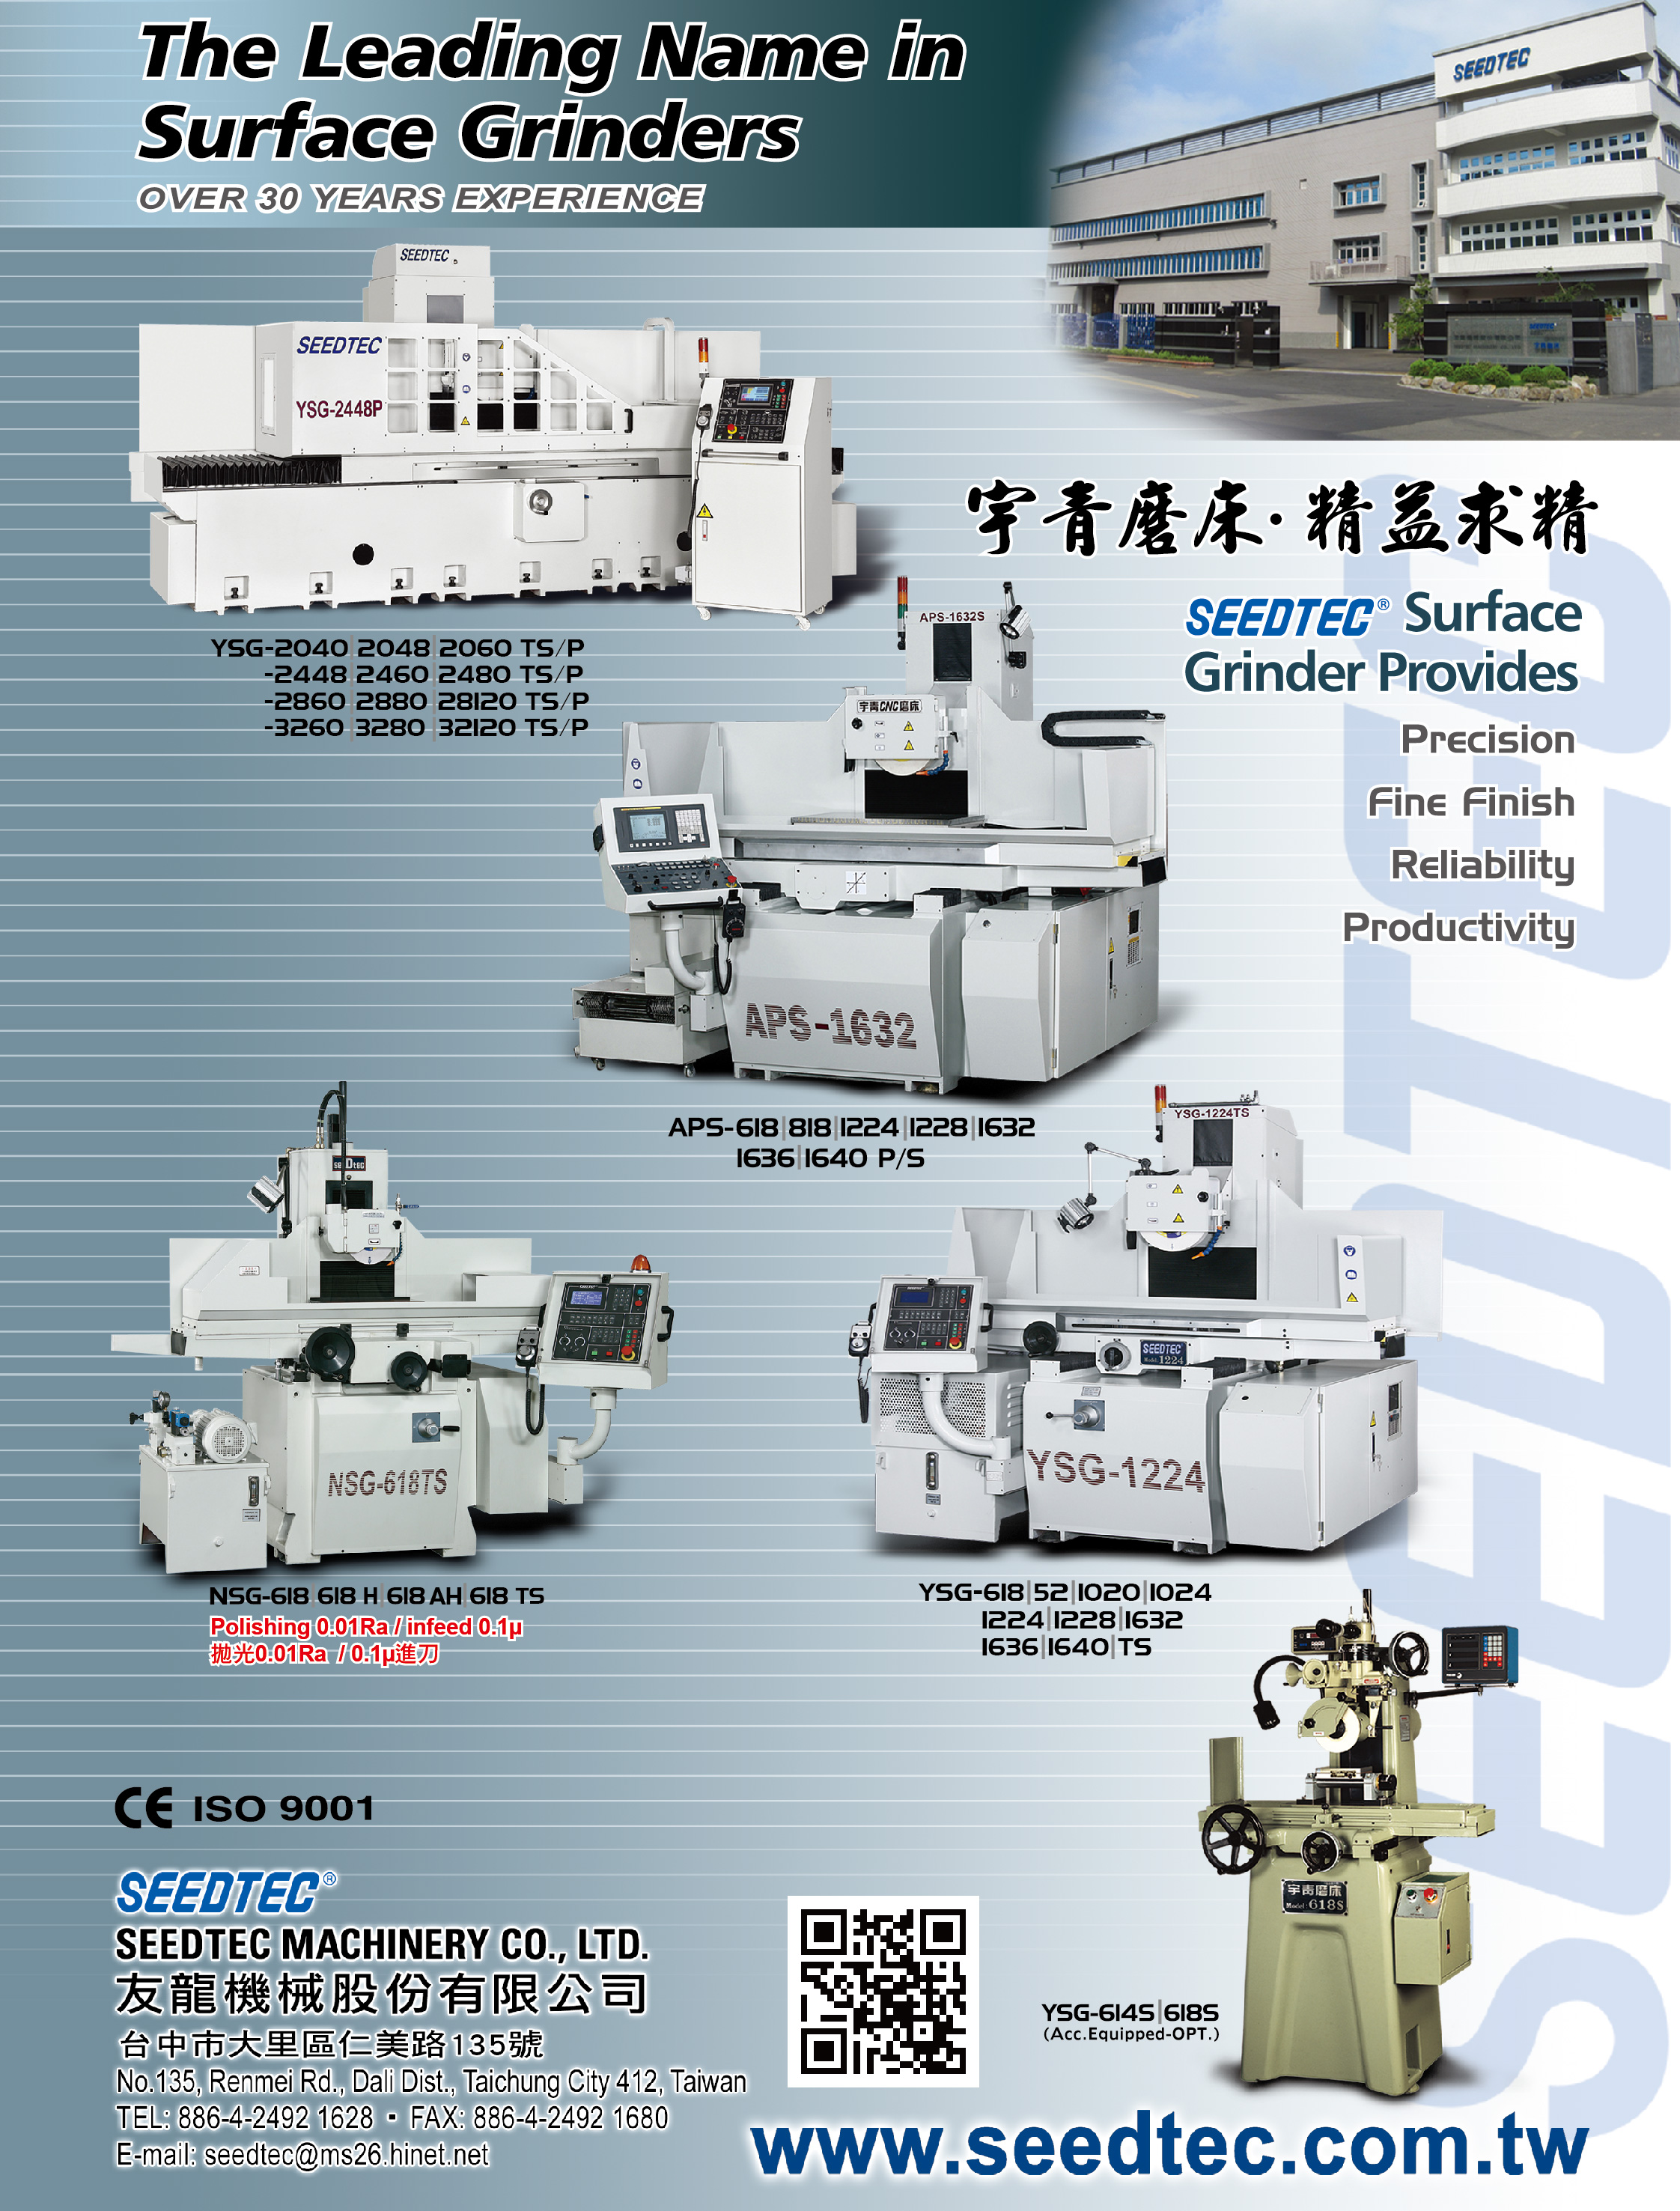 SEEDTEC MACHINERY CO., LTD.